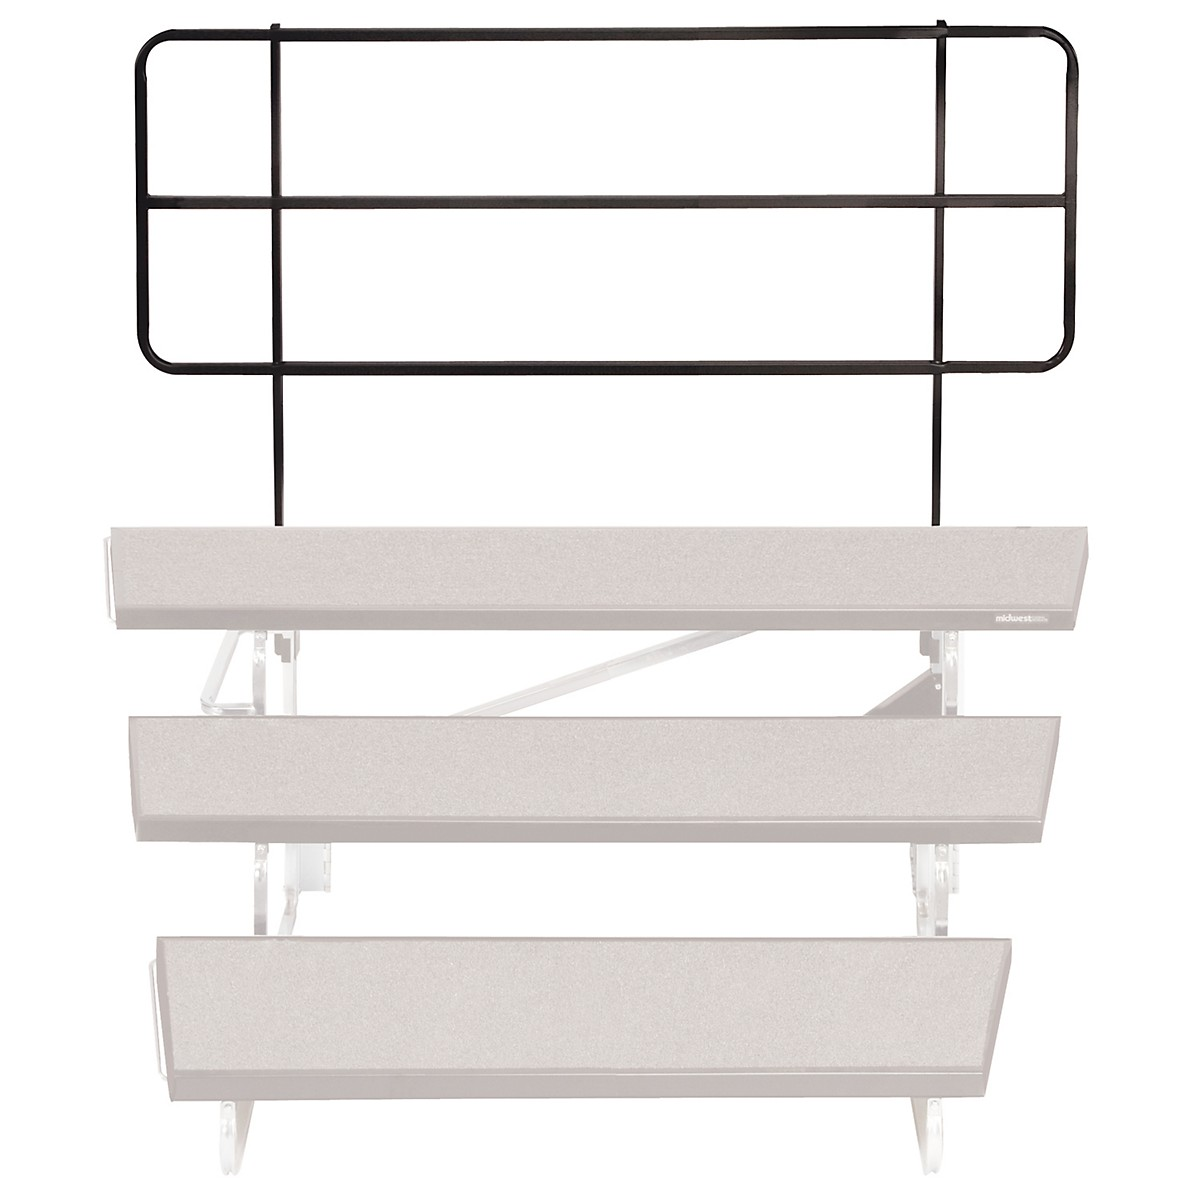 Midwest Folding Products TransFold Choral Risers